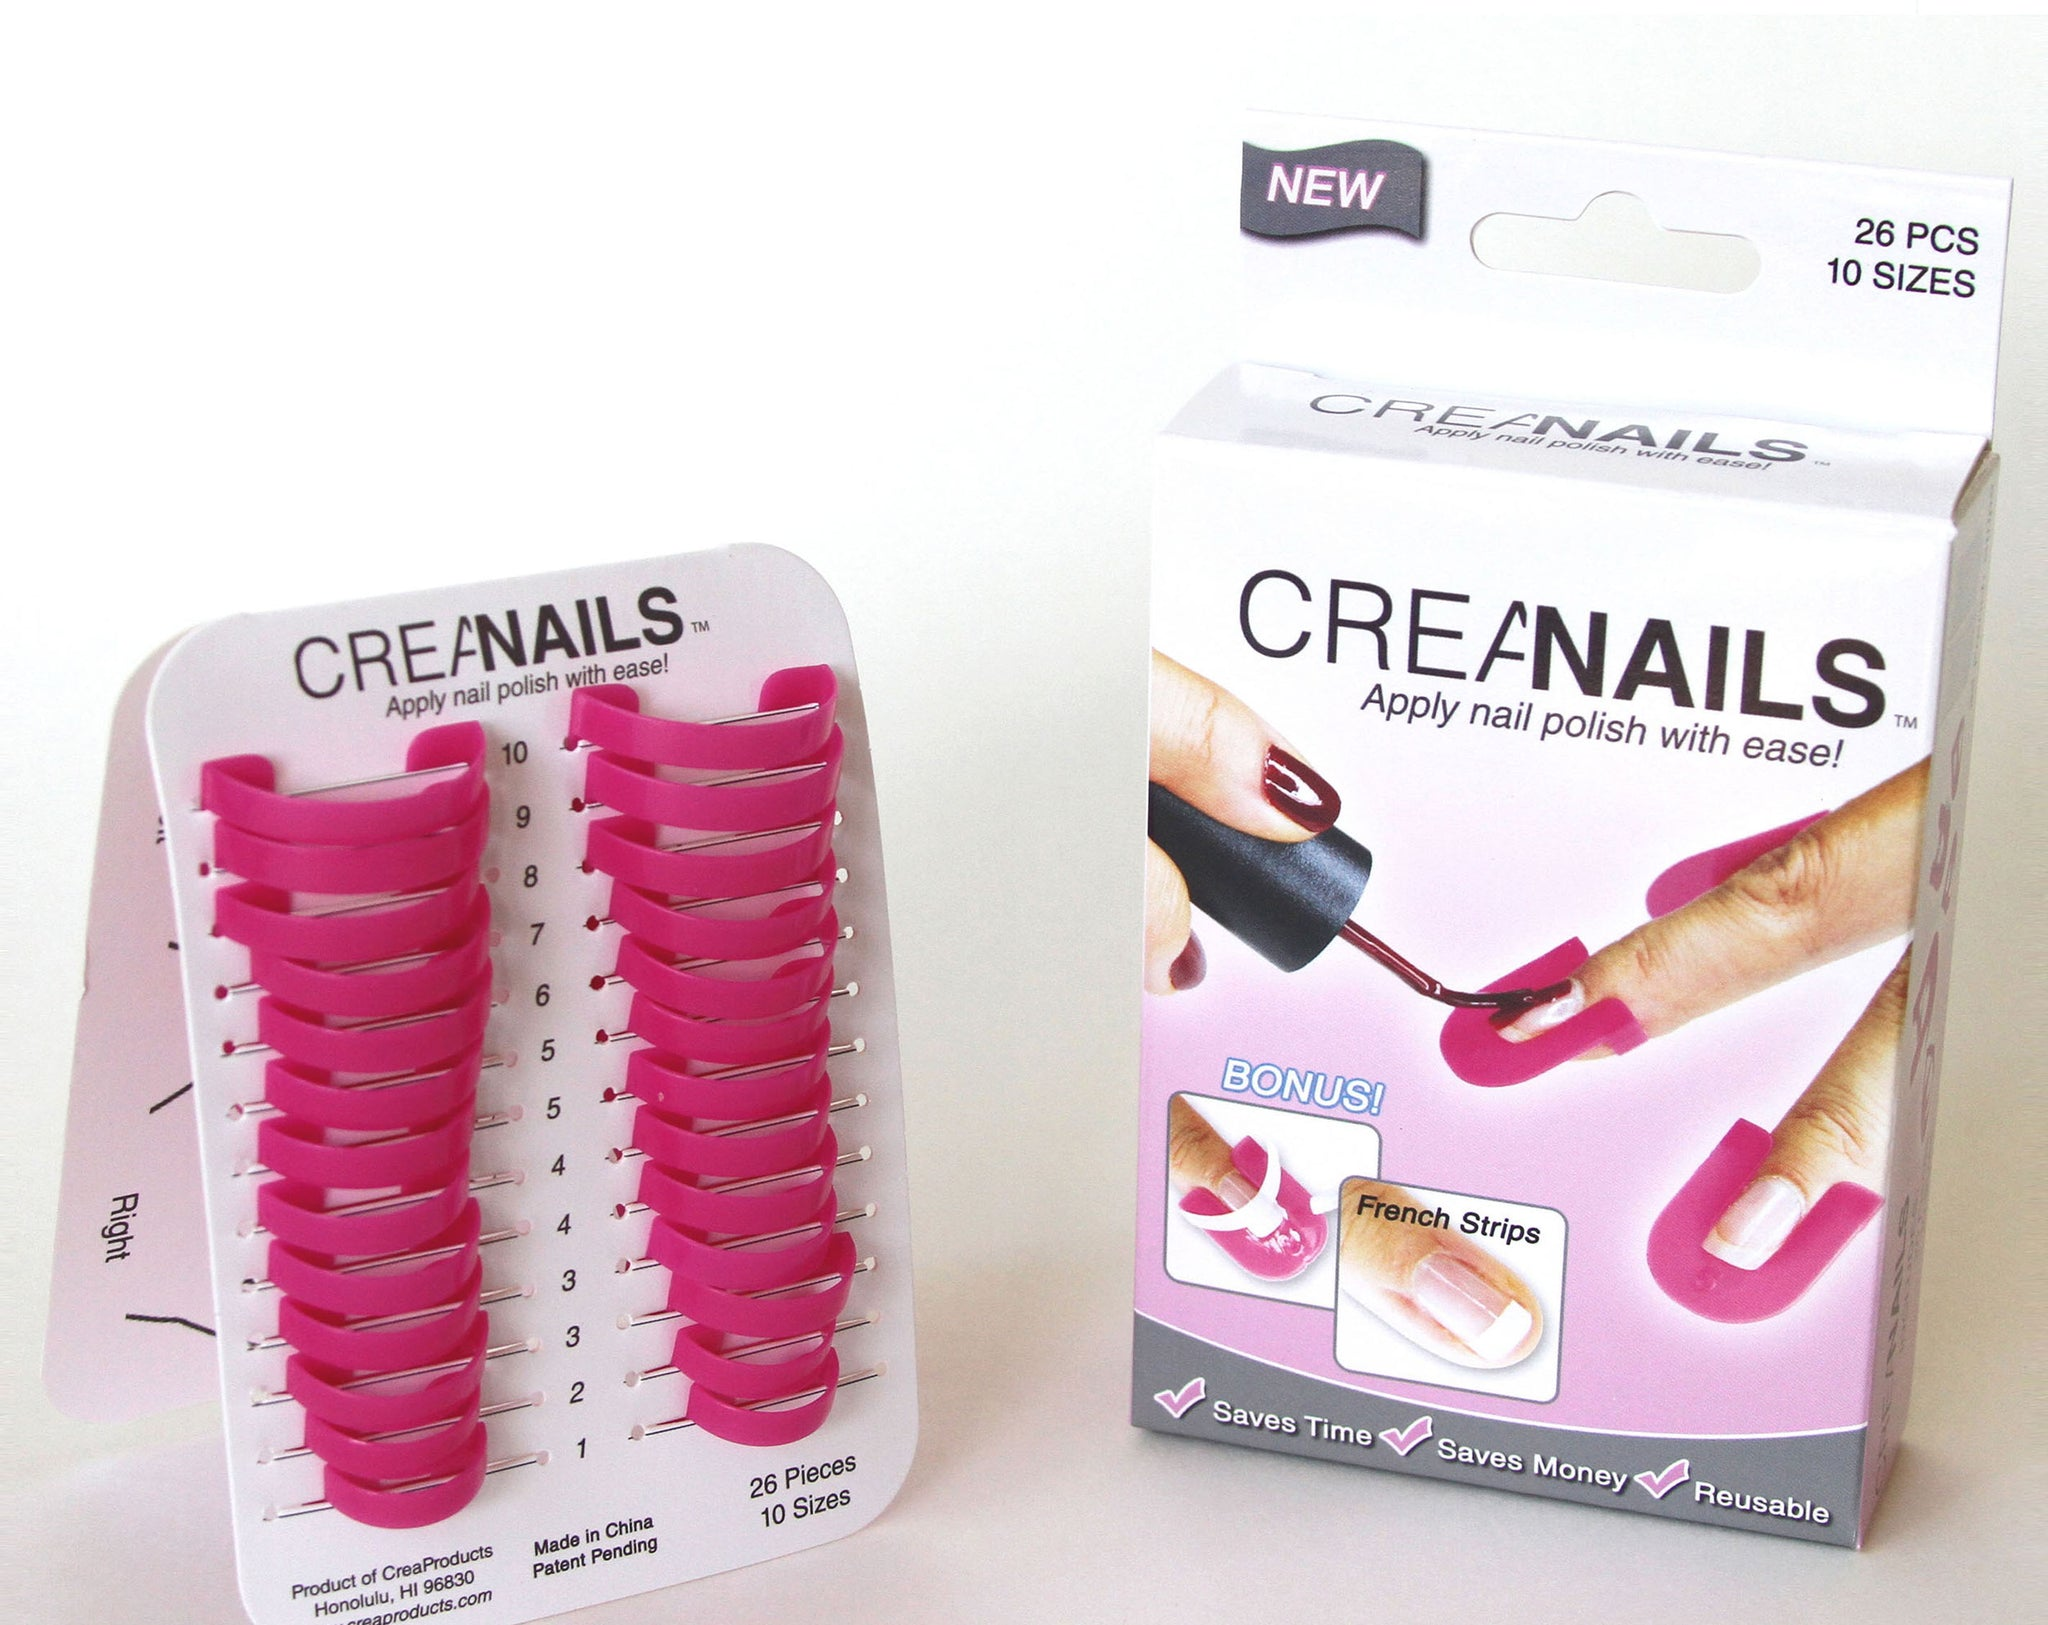 Original CreaClip Set & CreaNails Package - CreaProducts Inc.